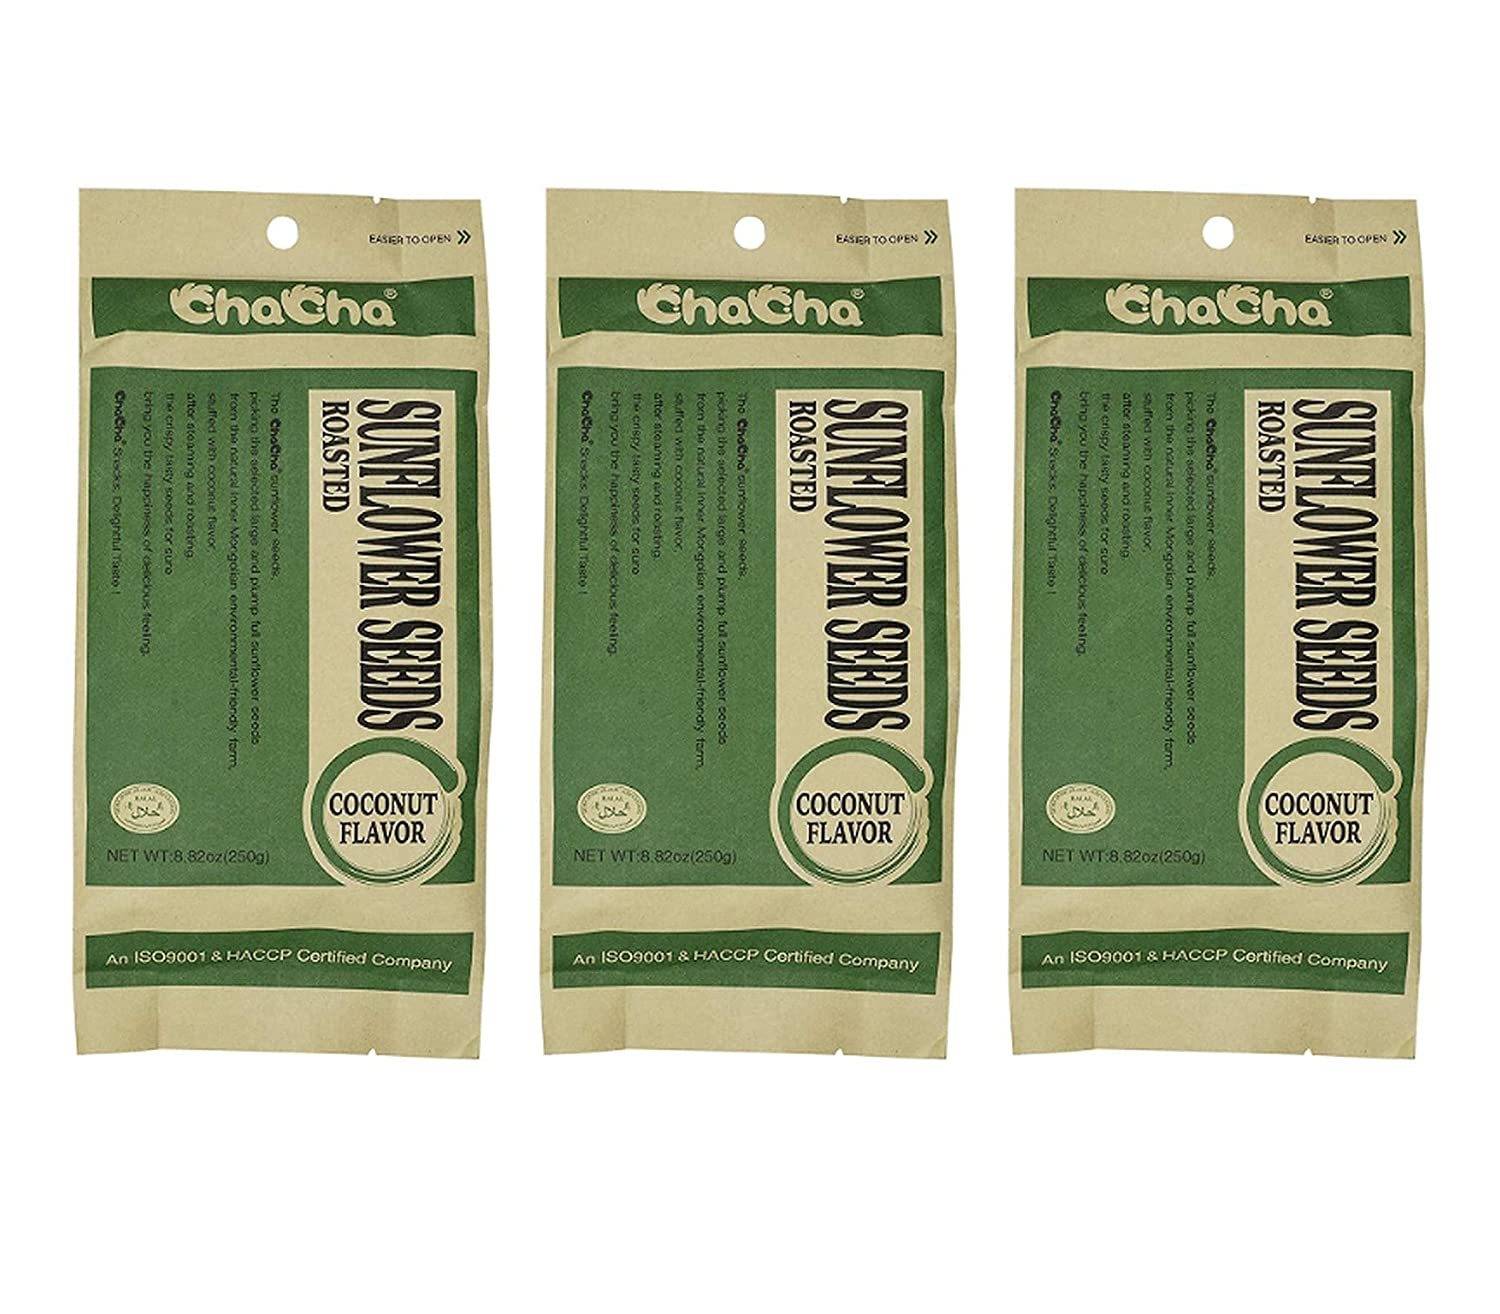 Oakland Mall ChaCha Coconut Flavored Roasted Sunflower Seeds o supreme 3 Total Pack